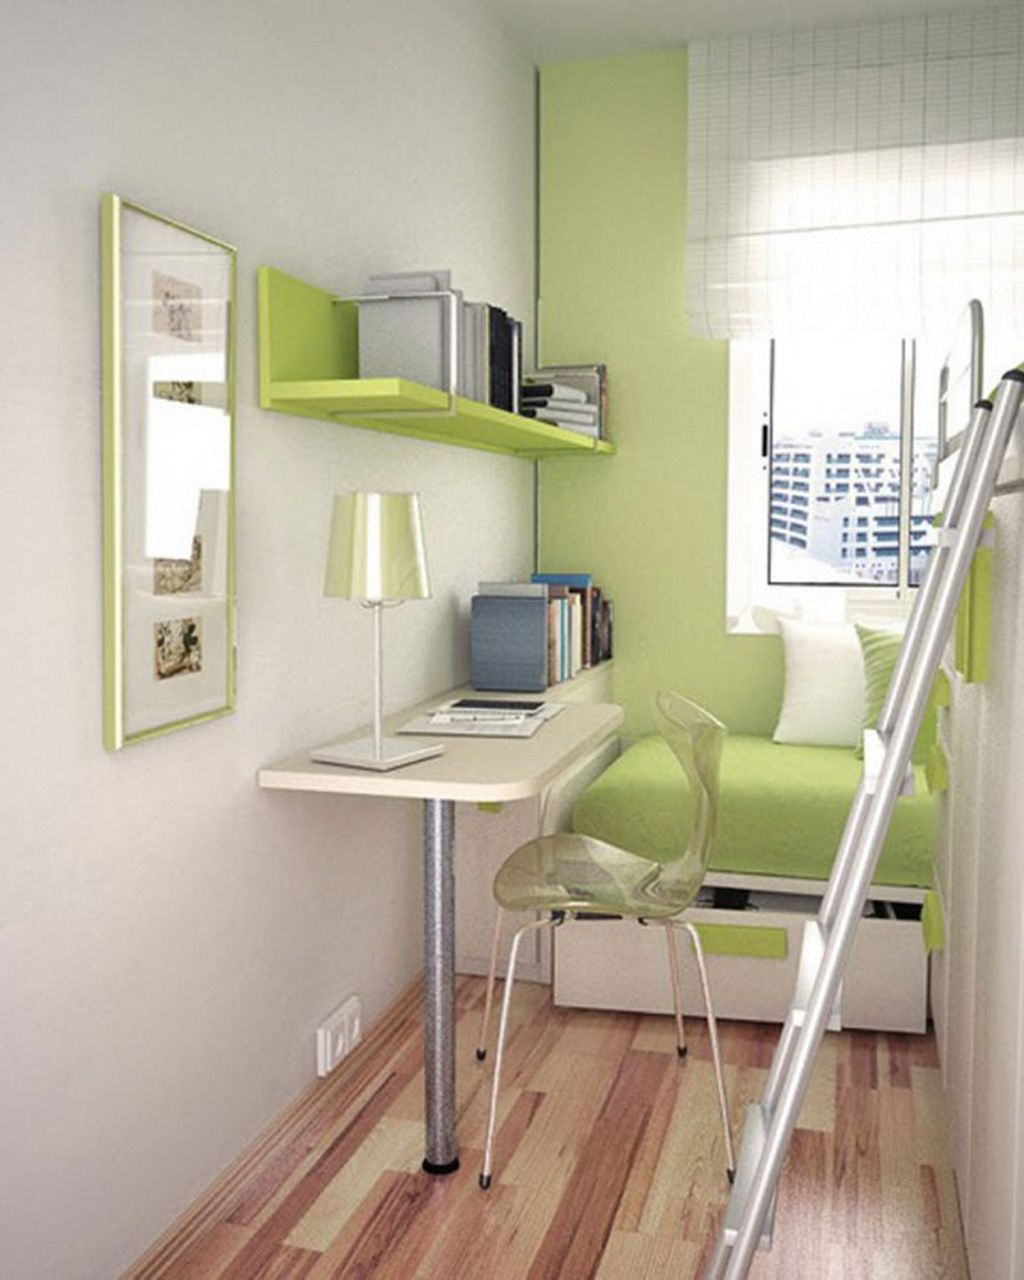 Loft bed with desk for small room  small space furniture ideas  Furniture Design Idea  Pinterest